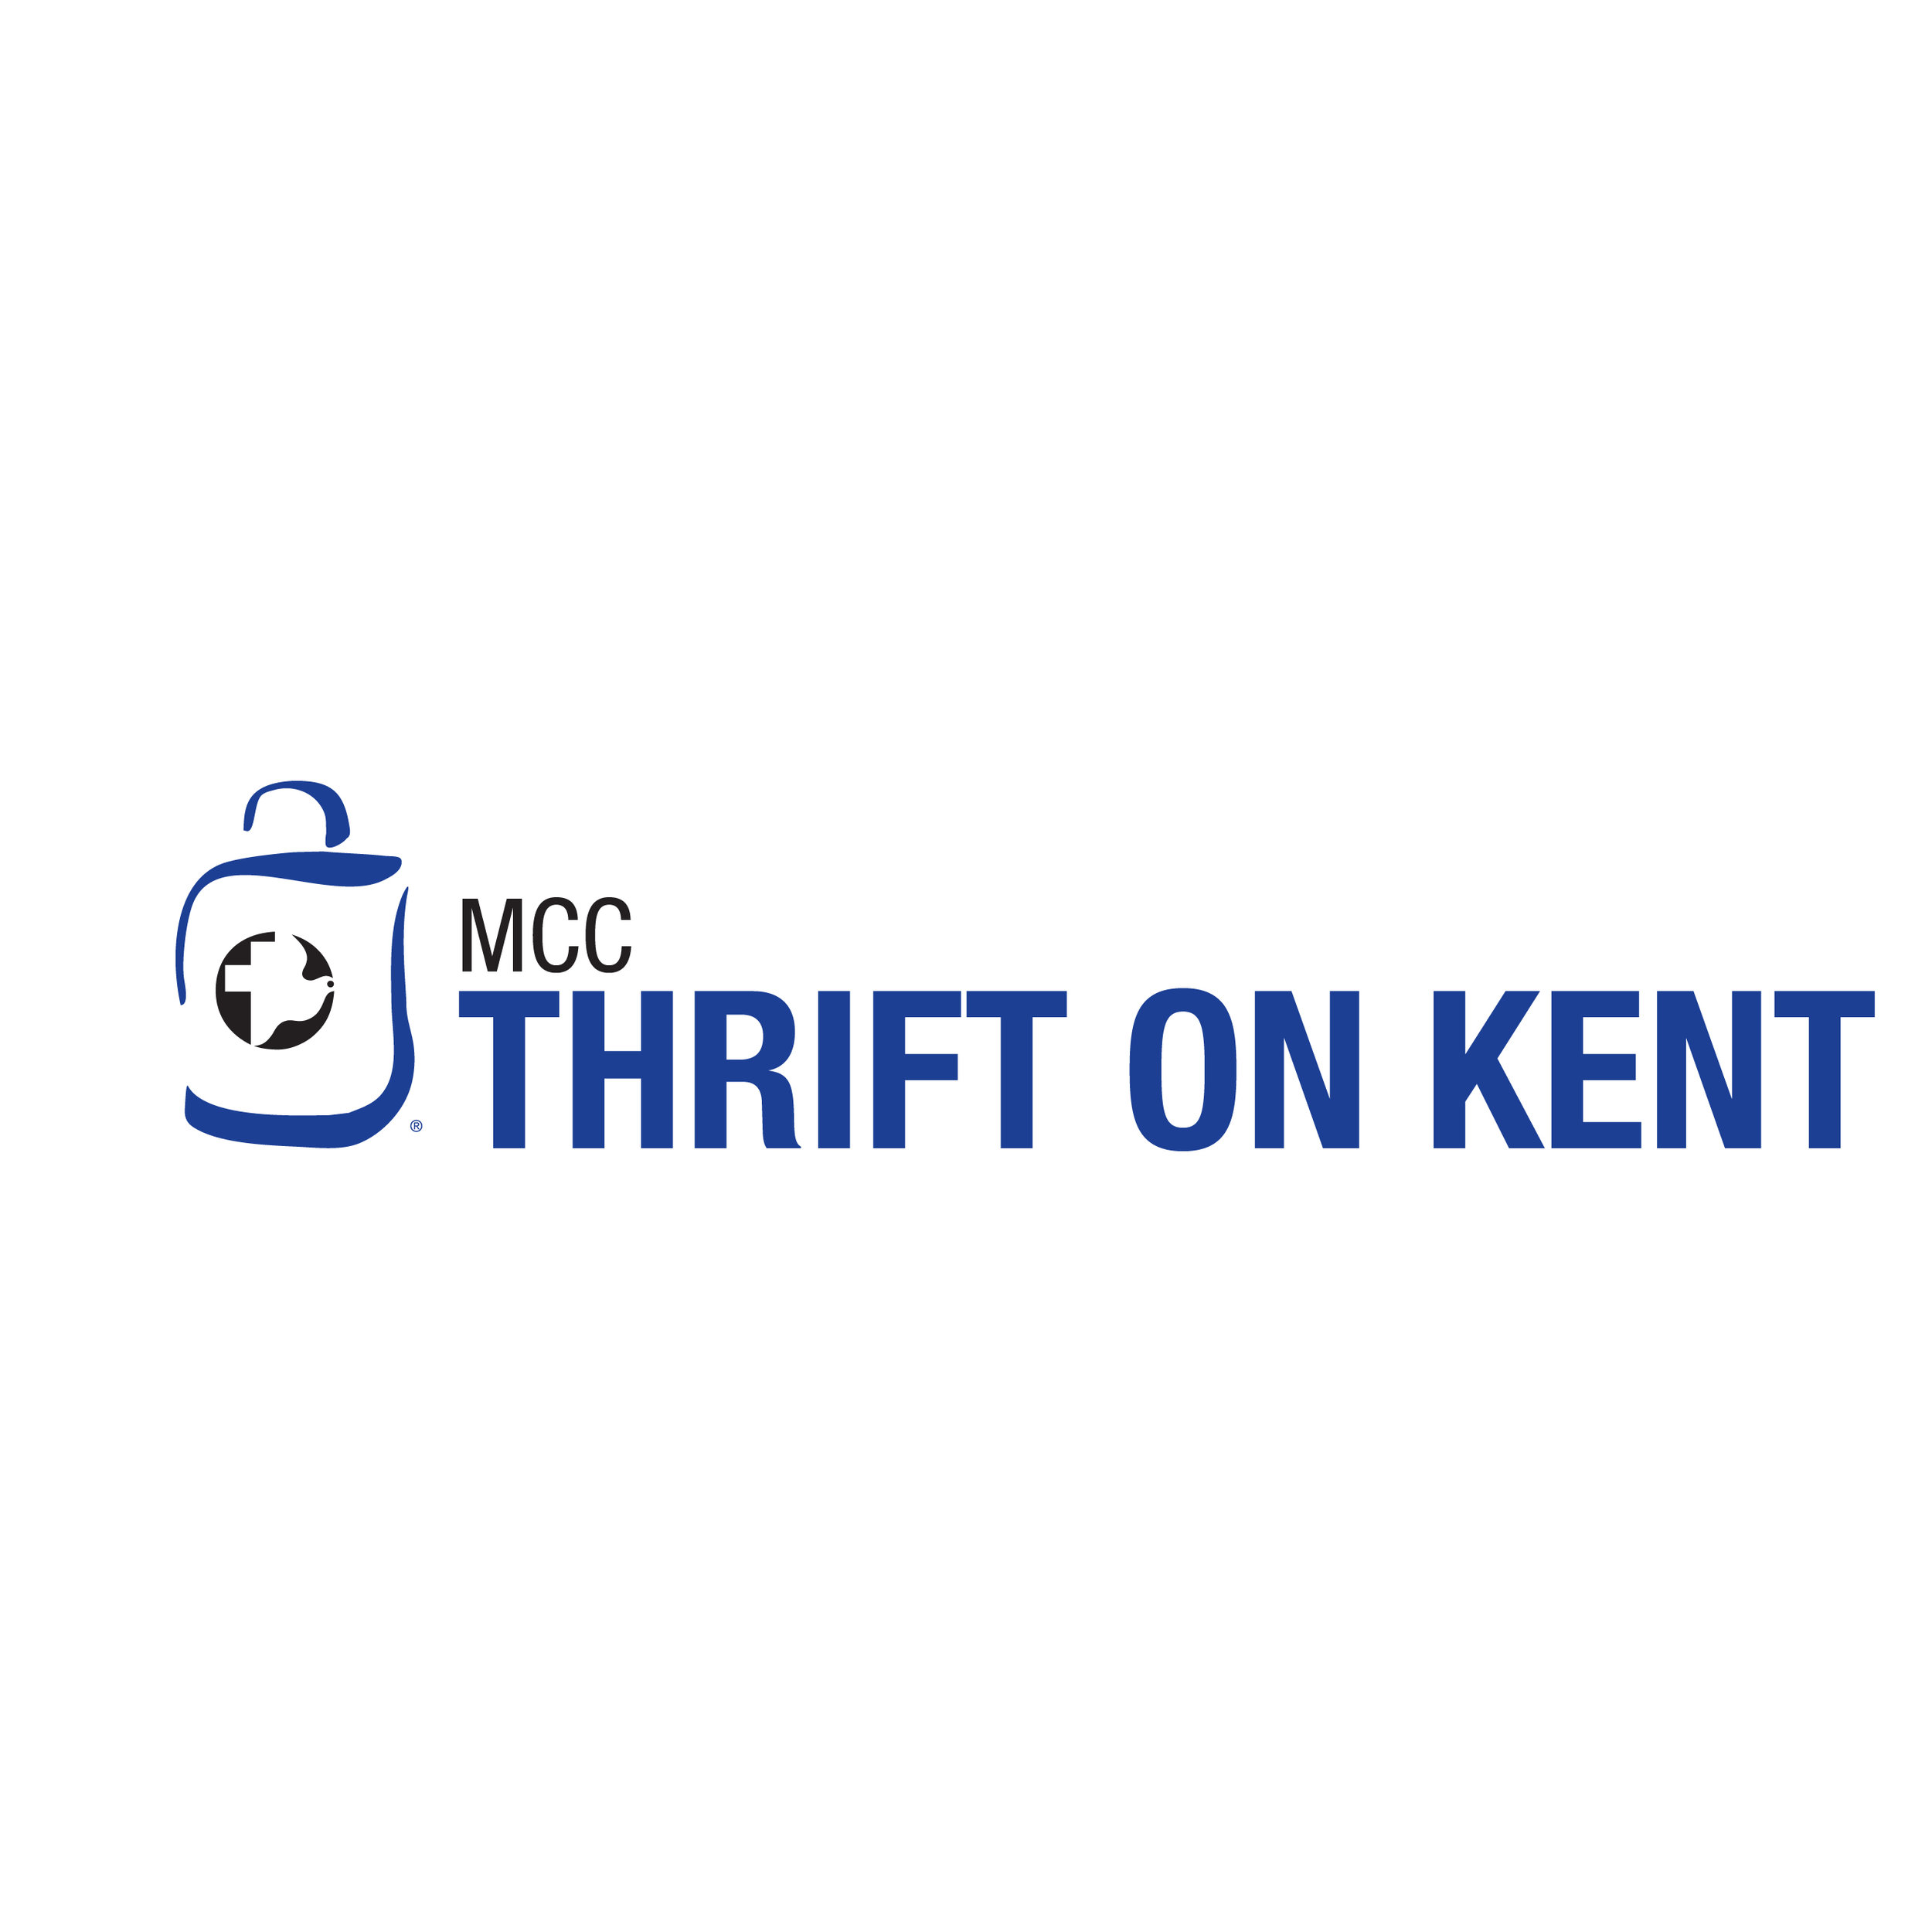 T H R I F T O N K E N T  Thrift on Kent is part of a network of Thrift shops across North America, benefiting the work of Mennonite Central Committee. As a non-profit 100% of the money made at Thrift on Kent, after expenses, goes to Mennonite Central Committee Ontario for disaster relief, sustainable community development and restorative justice and peace-building work, don here in our community and around the world. By shopping, donating or volunteering you choose to make a difference locally and globally. Thank you for demonstrating care for creation by reusing and repurposing, diverting items from our landfills.